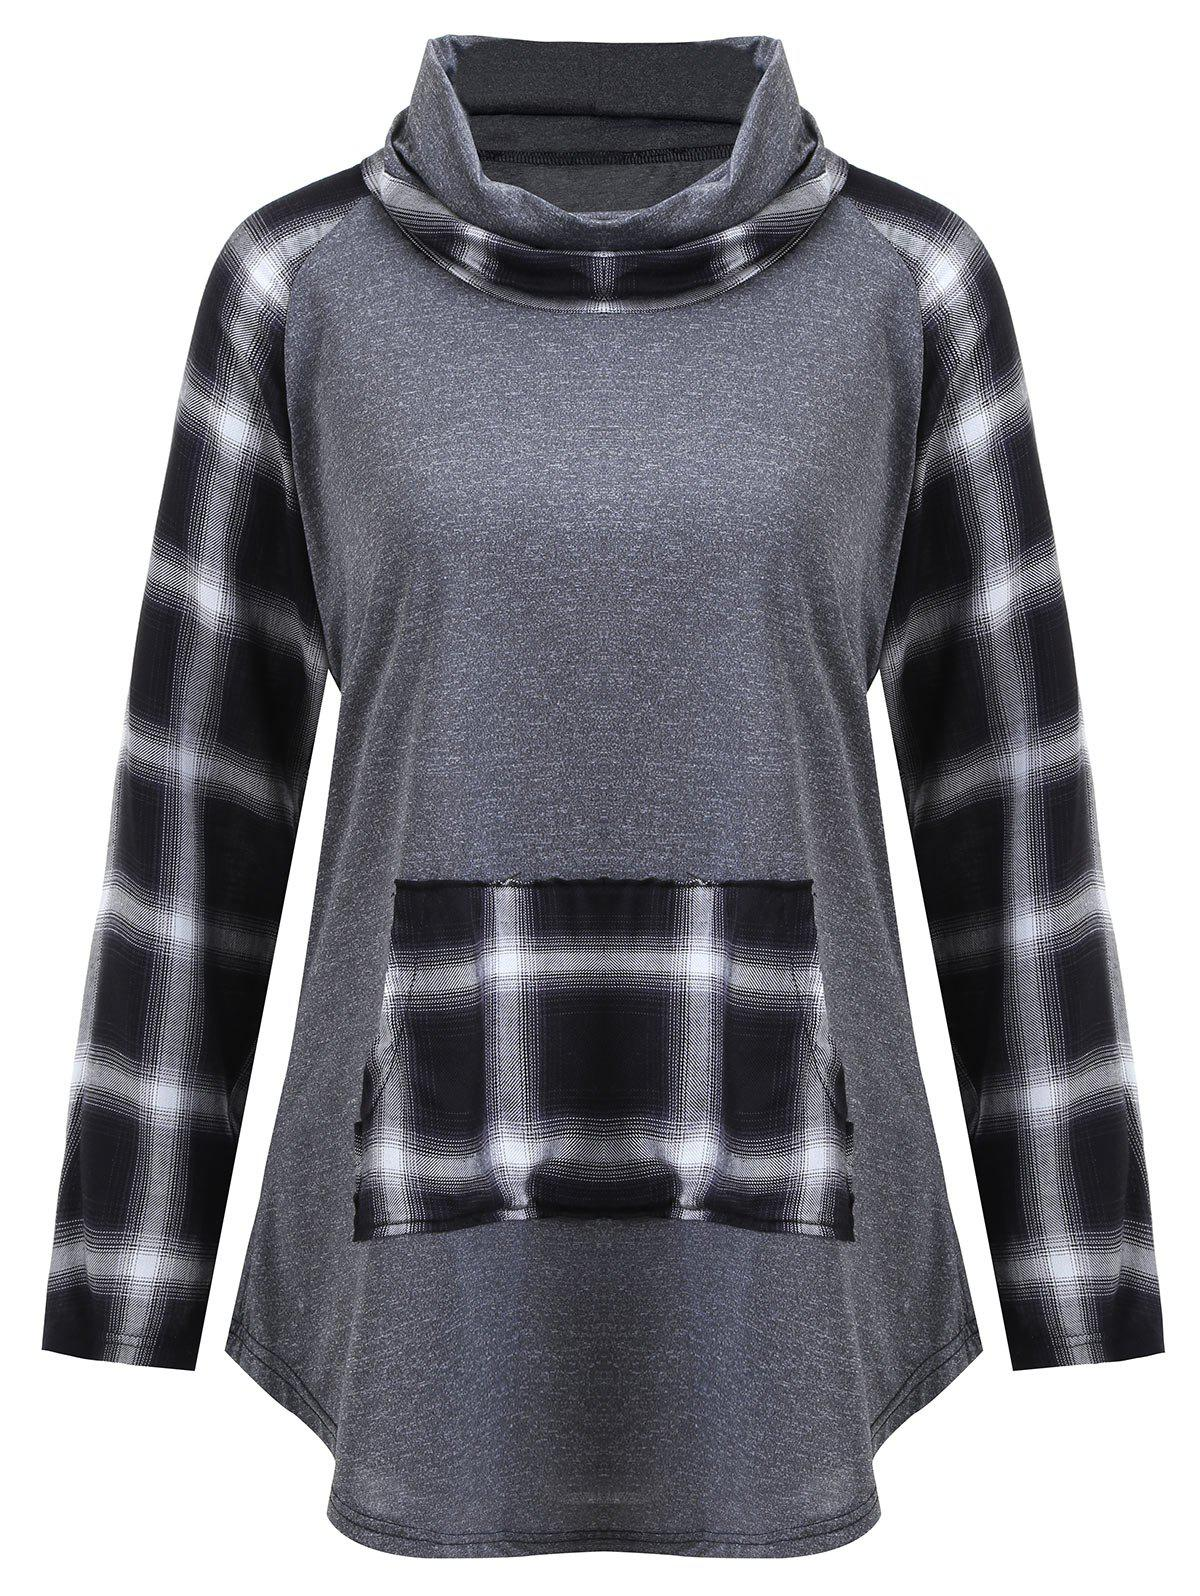 Plus Size Turtleneck Plaid Panel TeeWOMEN<br><br>Size: 2XL; Color: GRAY; Material: Cotton,Polyester; Shirt Length: Regular; Sleeve Length: Full; Collar: Turtleneck; Style: Fashion; Season: Fall; Sleeve Type: Raglan Sleeve; Embellishment: Front Pocket,Panel; Pattern Type: Plaid; Weight: 0.2700kg; Package Contents: 1 x T-shirt;